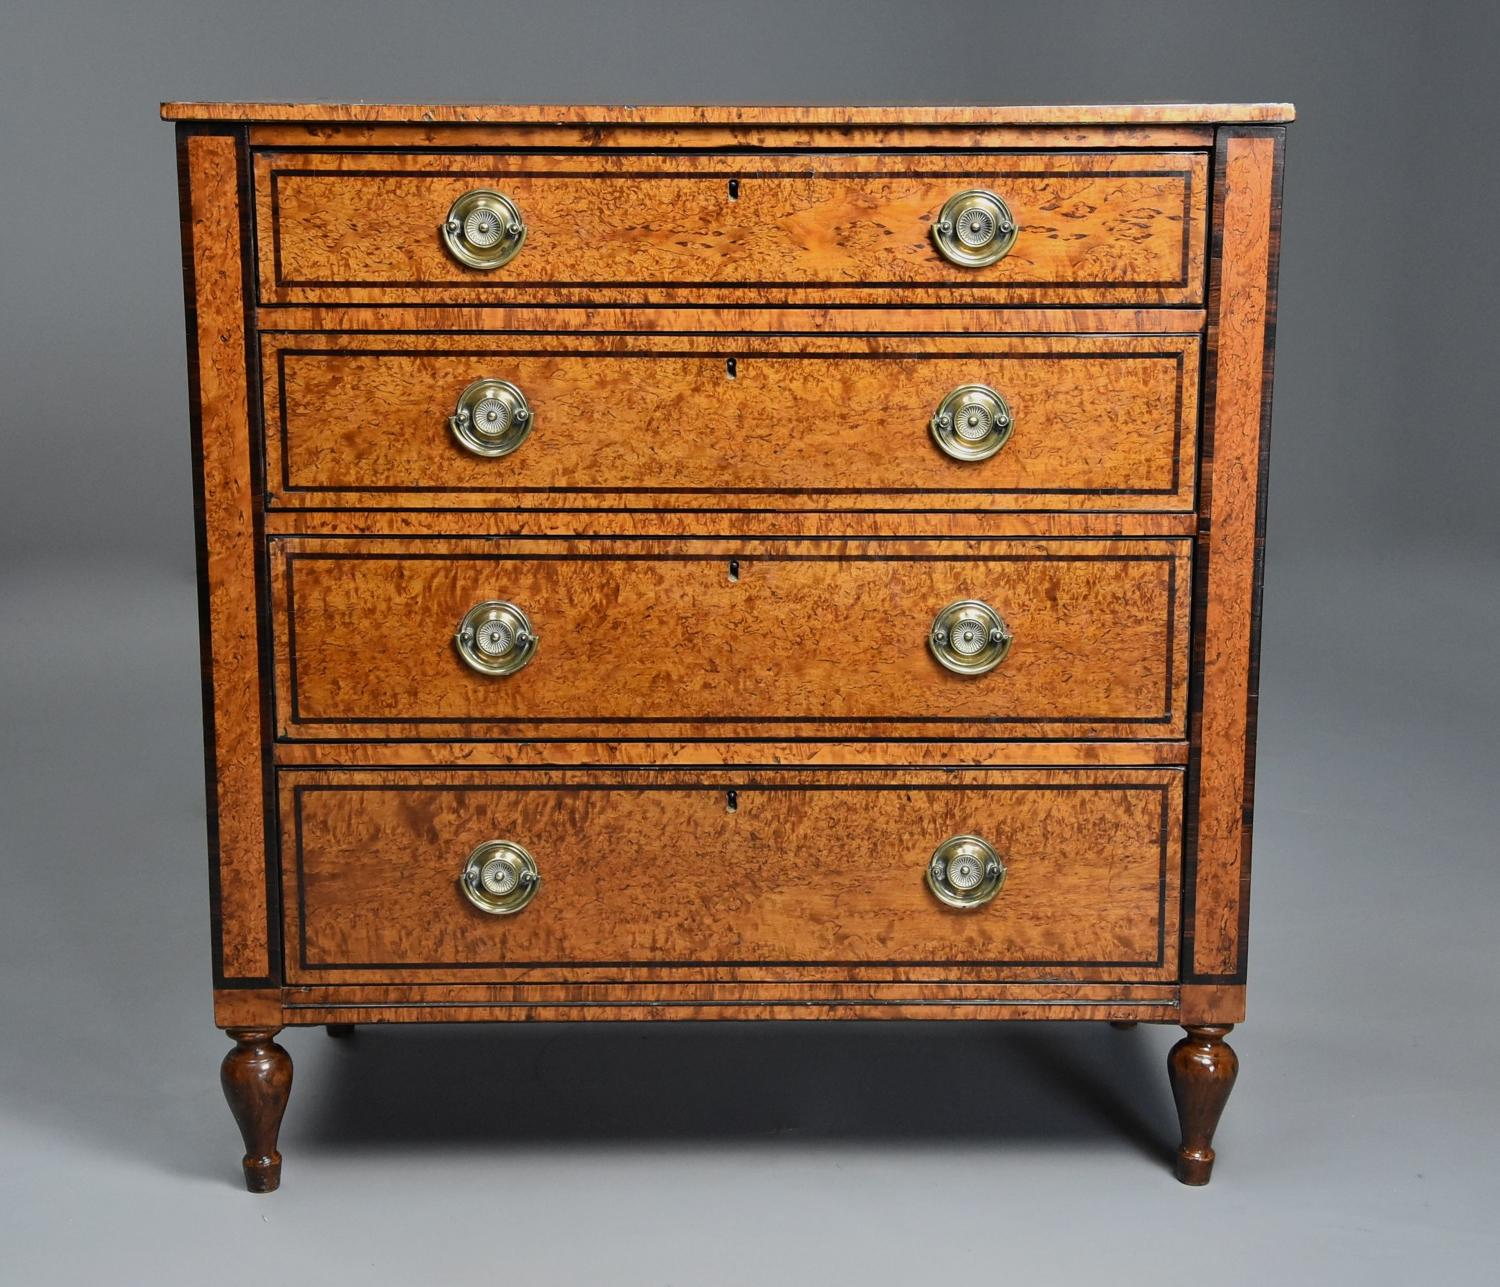 Rare early 19th century Regency Karelian birch chest of drawers